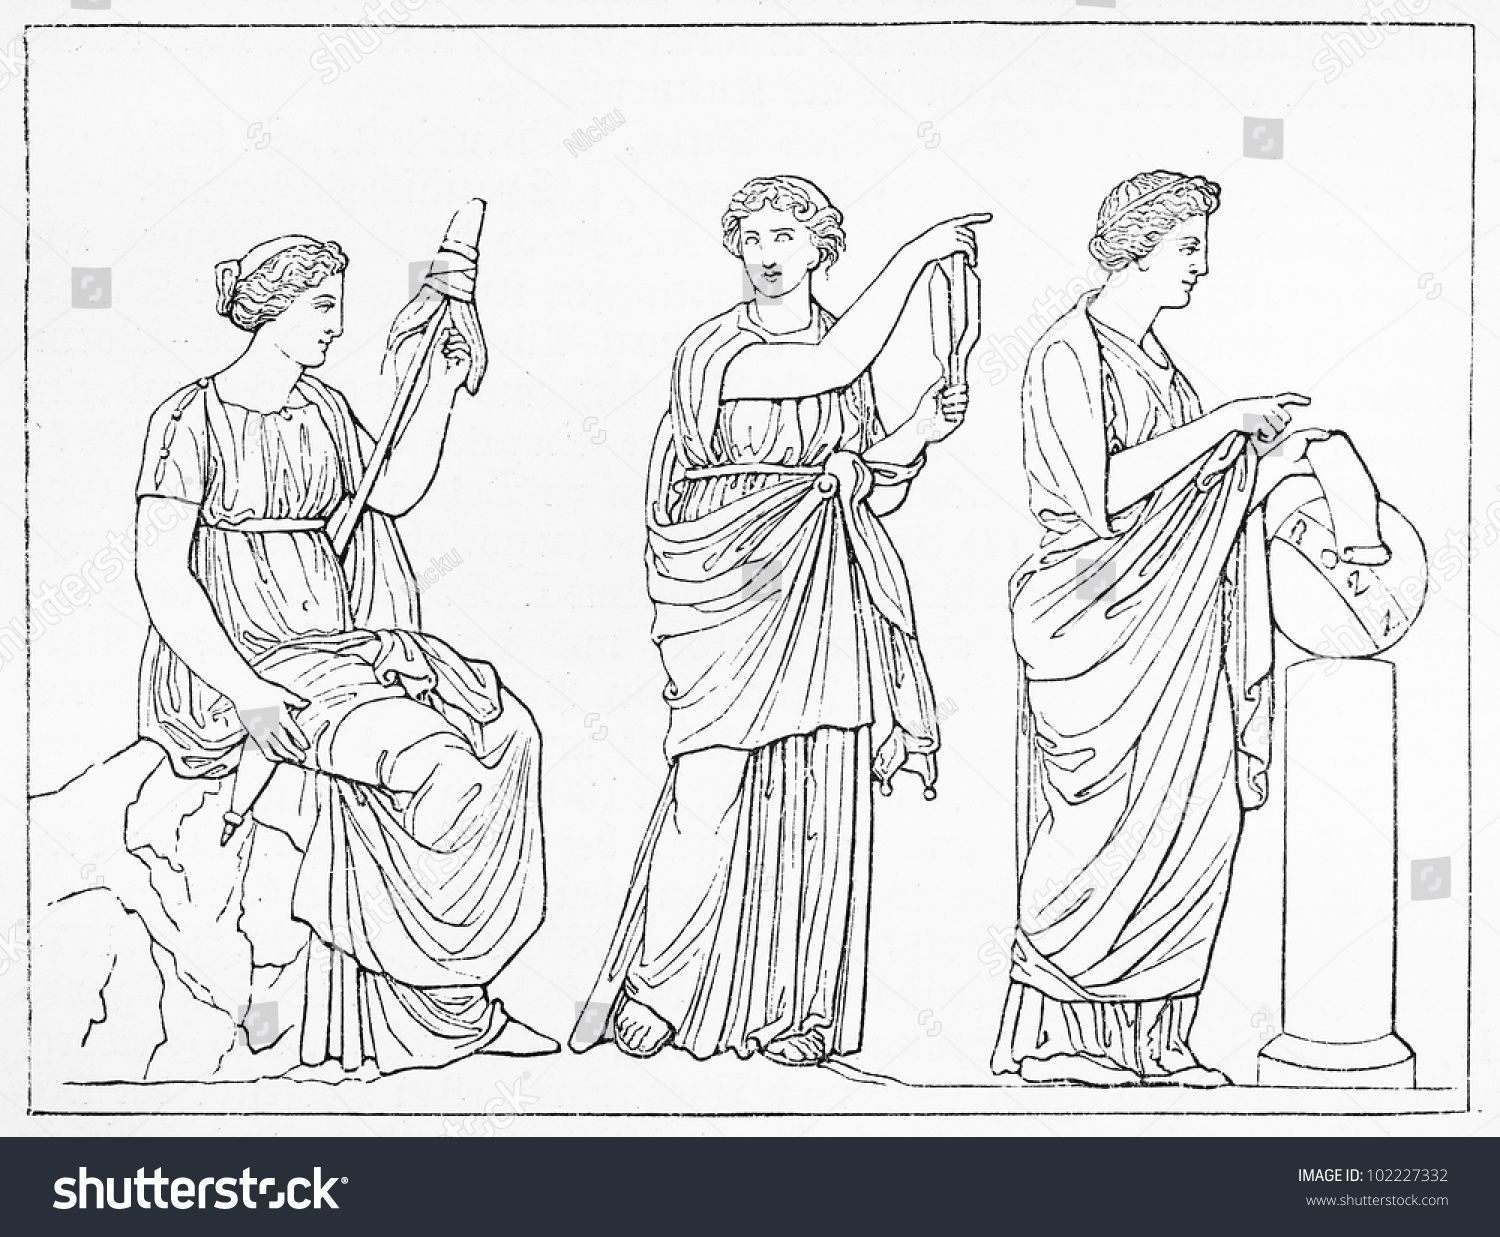 vintage drawing of the three fates clotho lachesis and atropos in greek mythology picture from meyers lexikon book written in german language